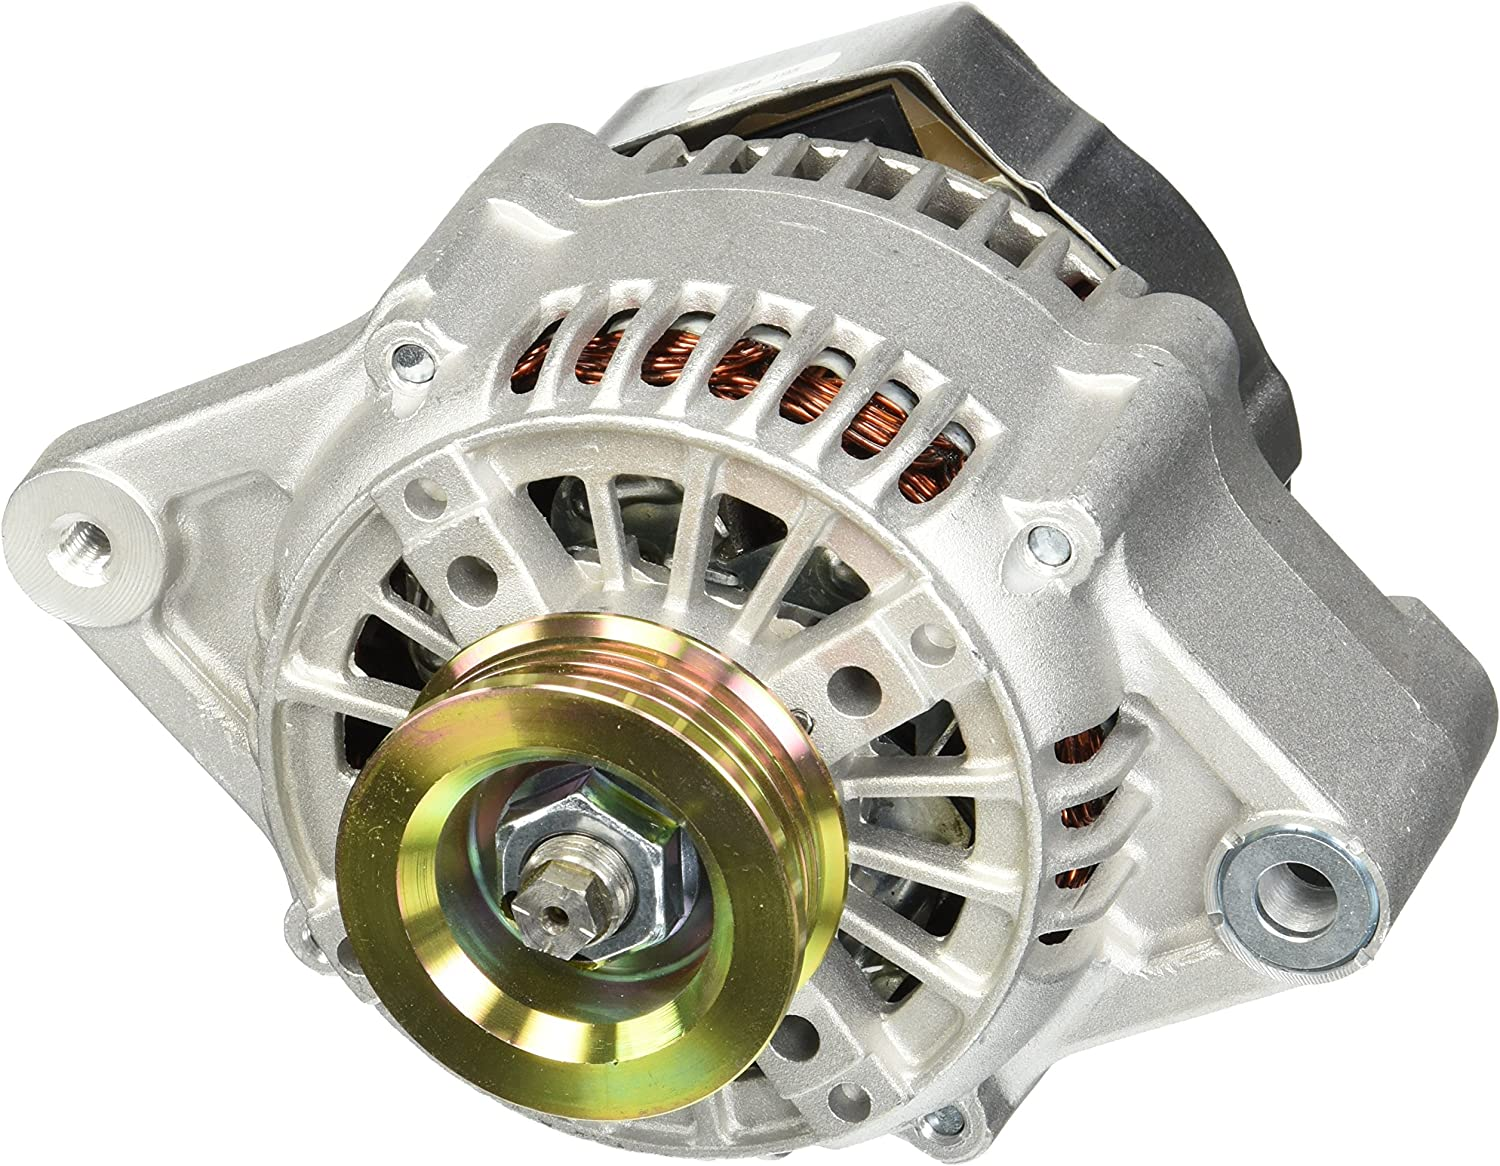 DB Electrical 400-52345 New Alternator 1.6 1.6L SEAL limited product Estee For gift Suzuki